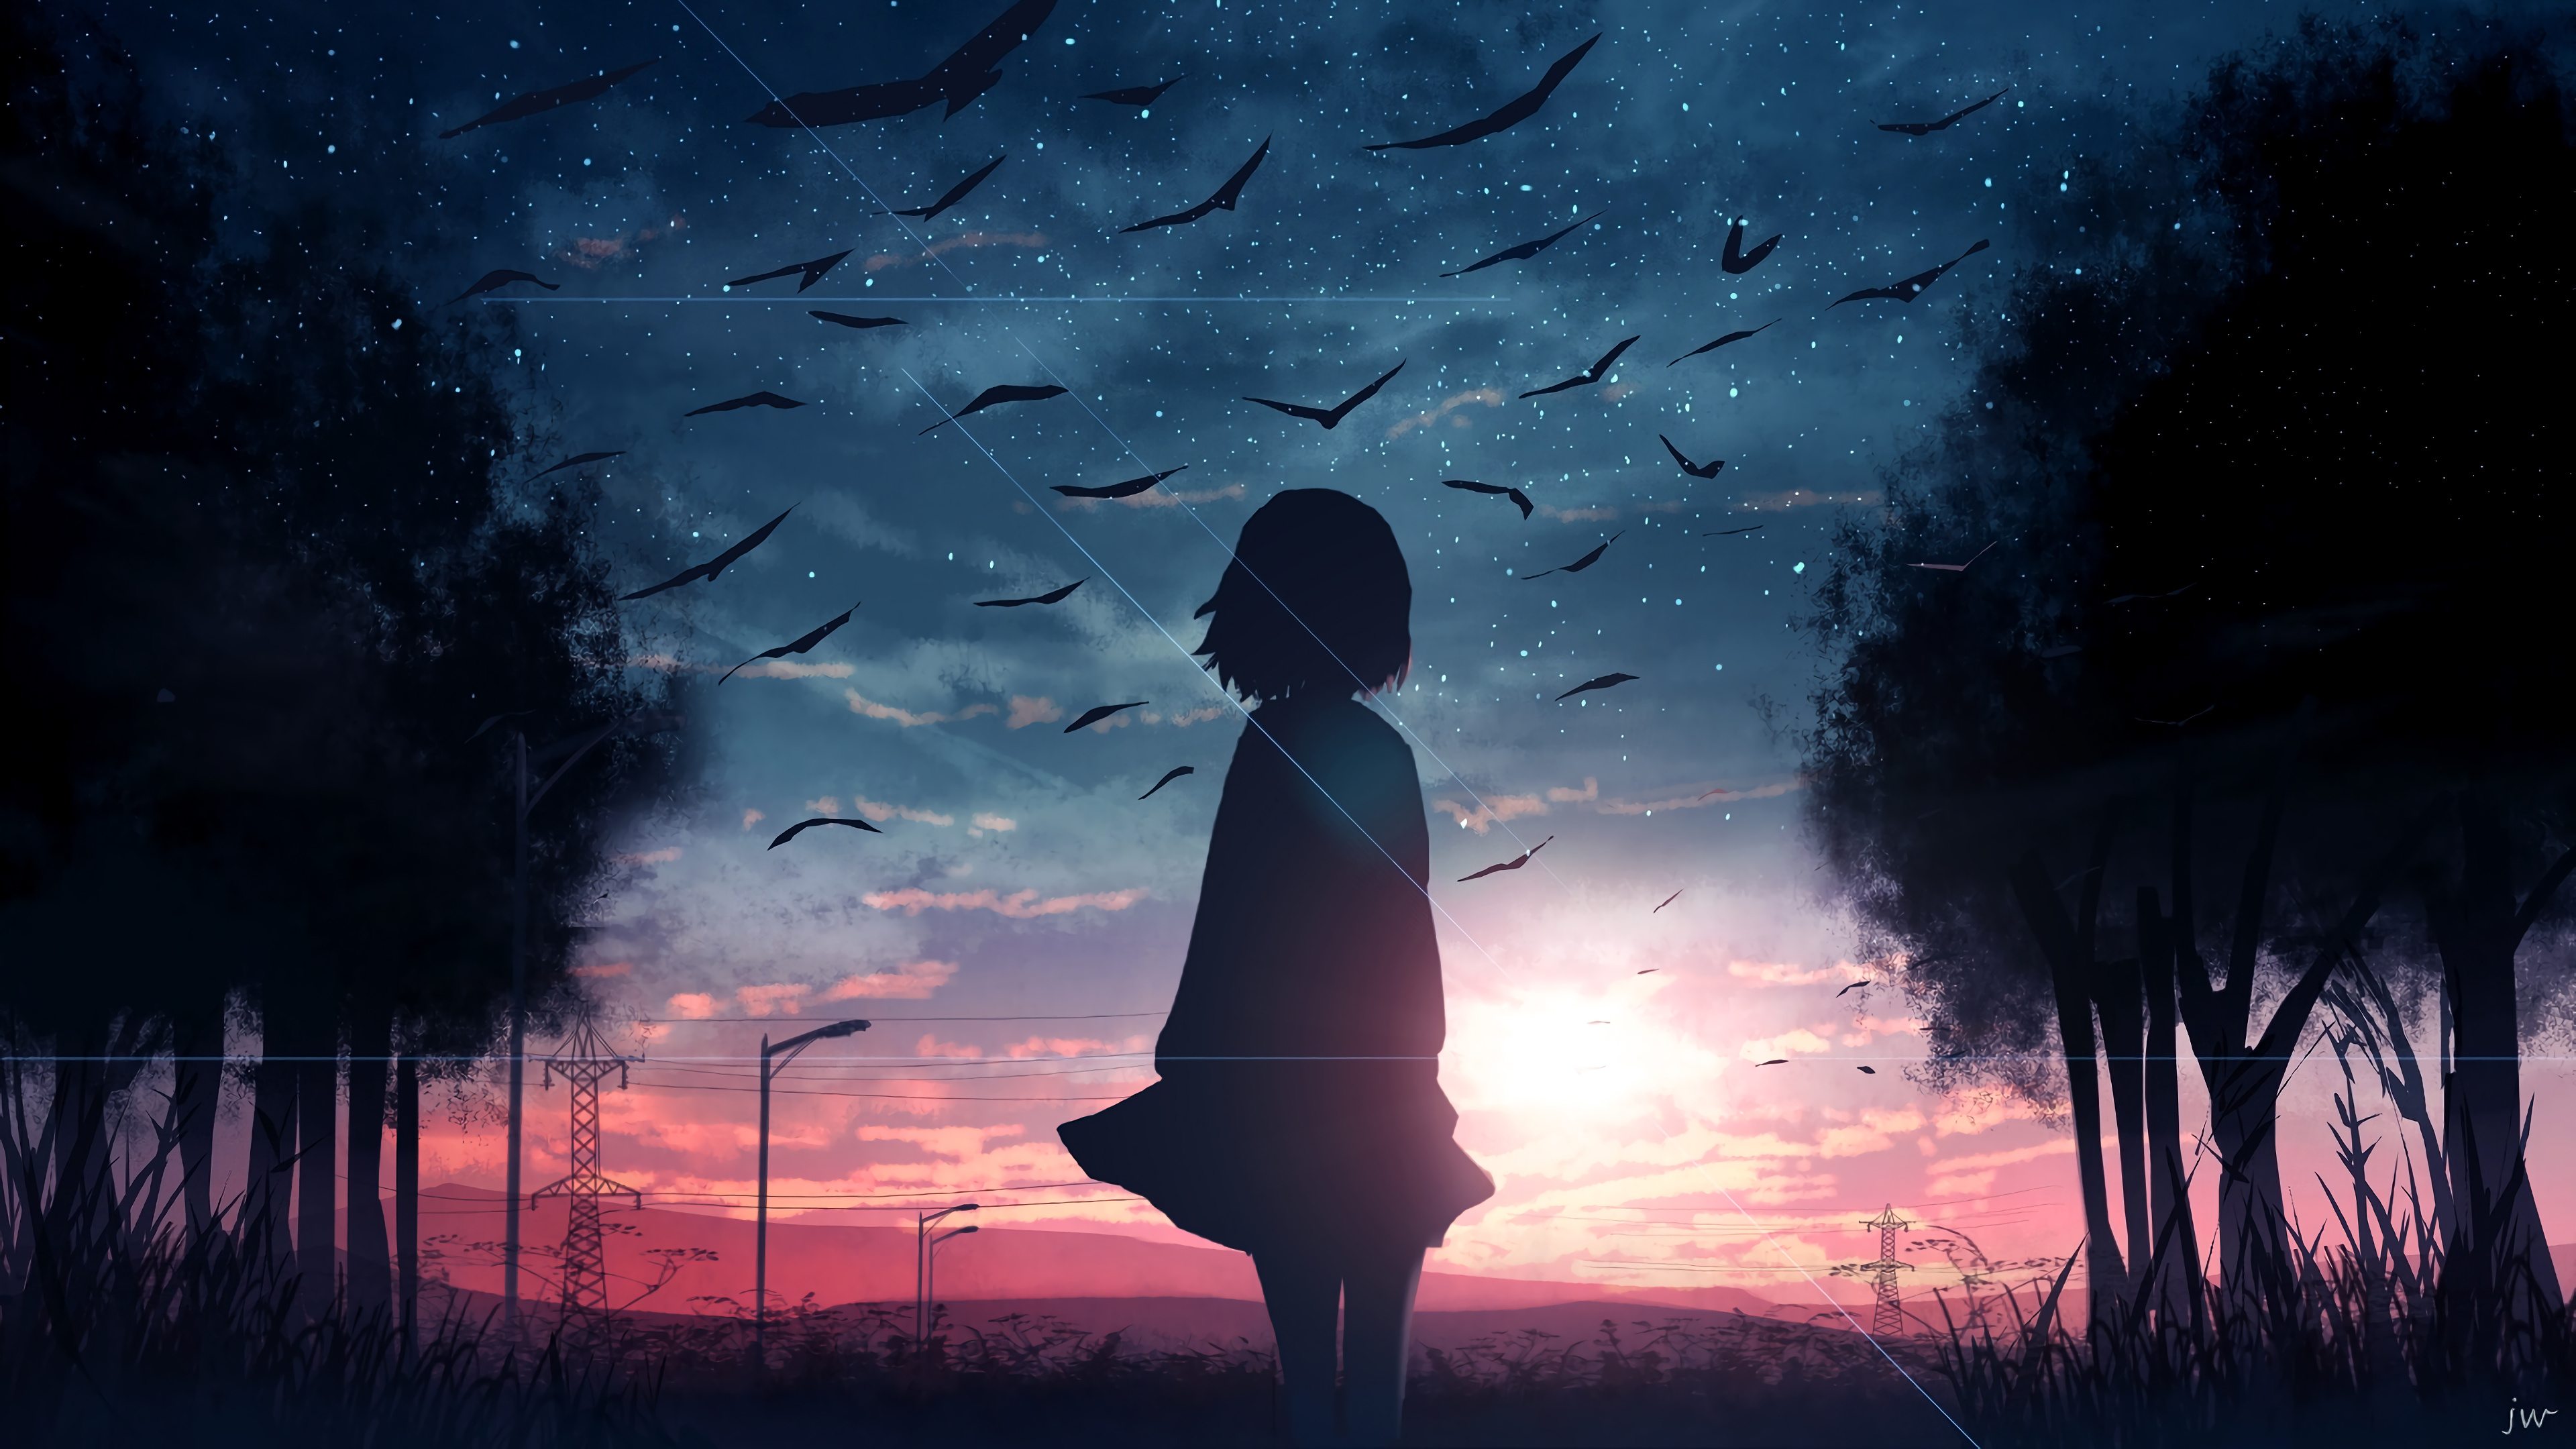 Wallpaper Sunrise Anime Girl Silhouette Scenery